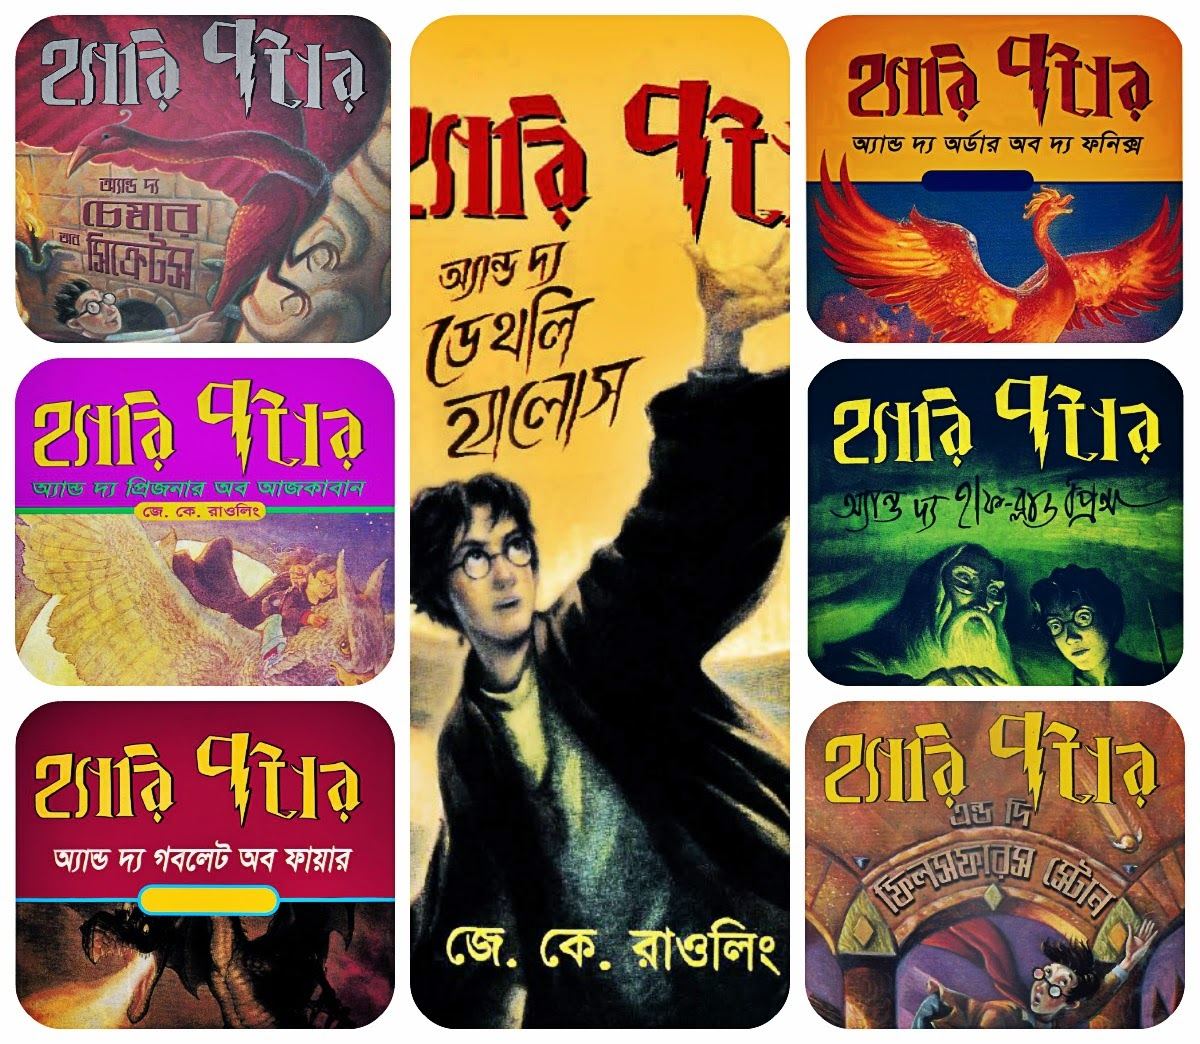 harry potter and the deathly hallows bangla pdf free download